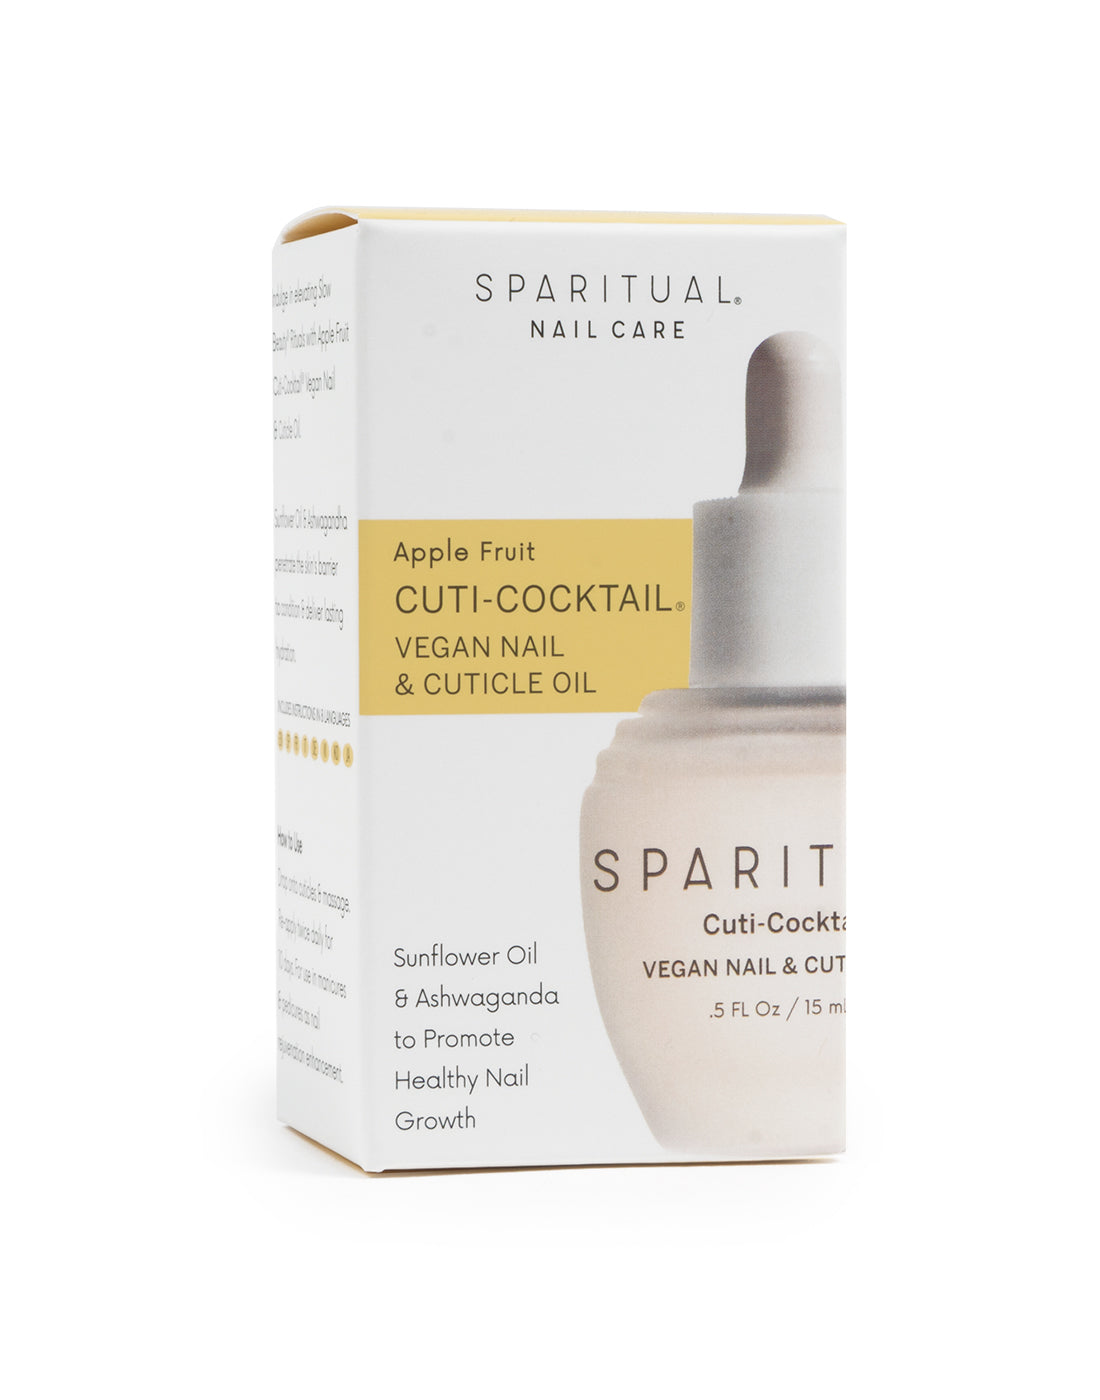 Cuti-Cocktail Vegan Nail & Cuticle Oil